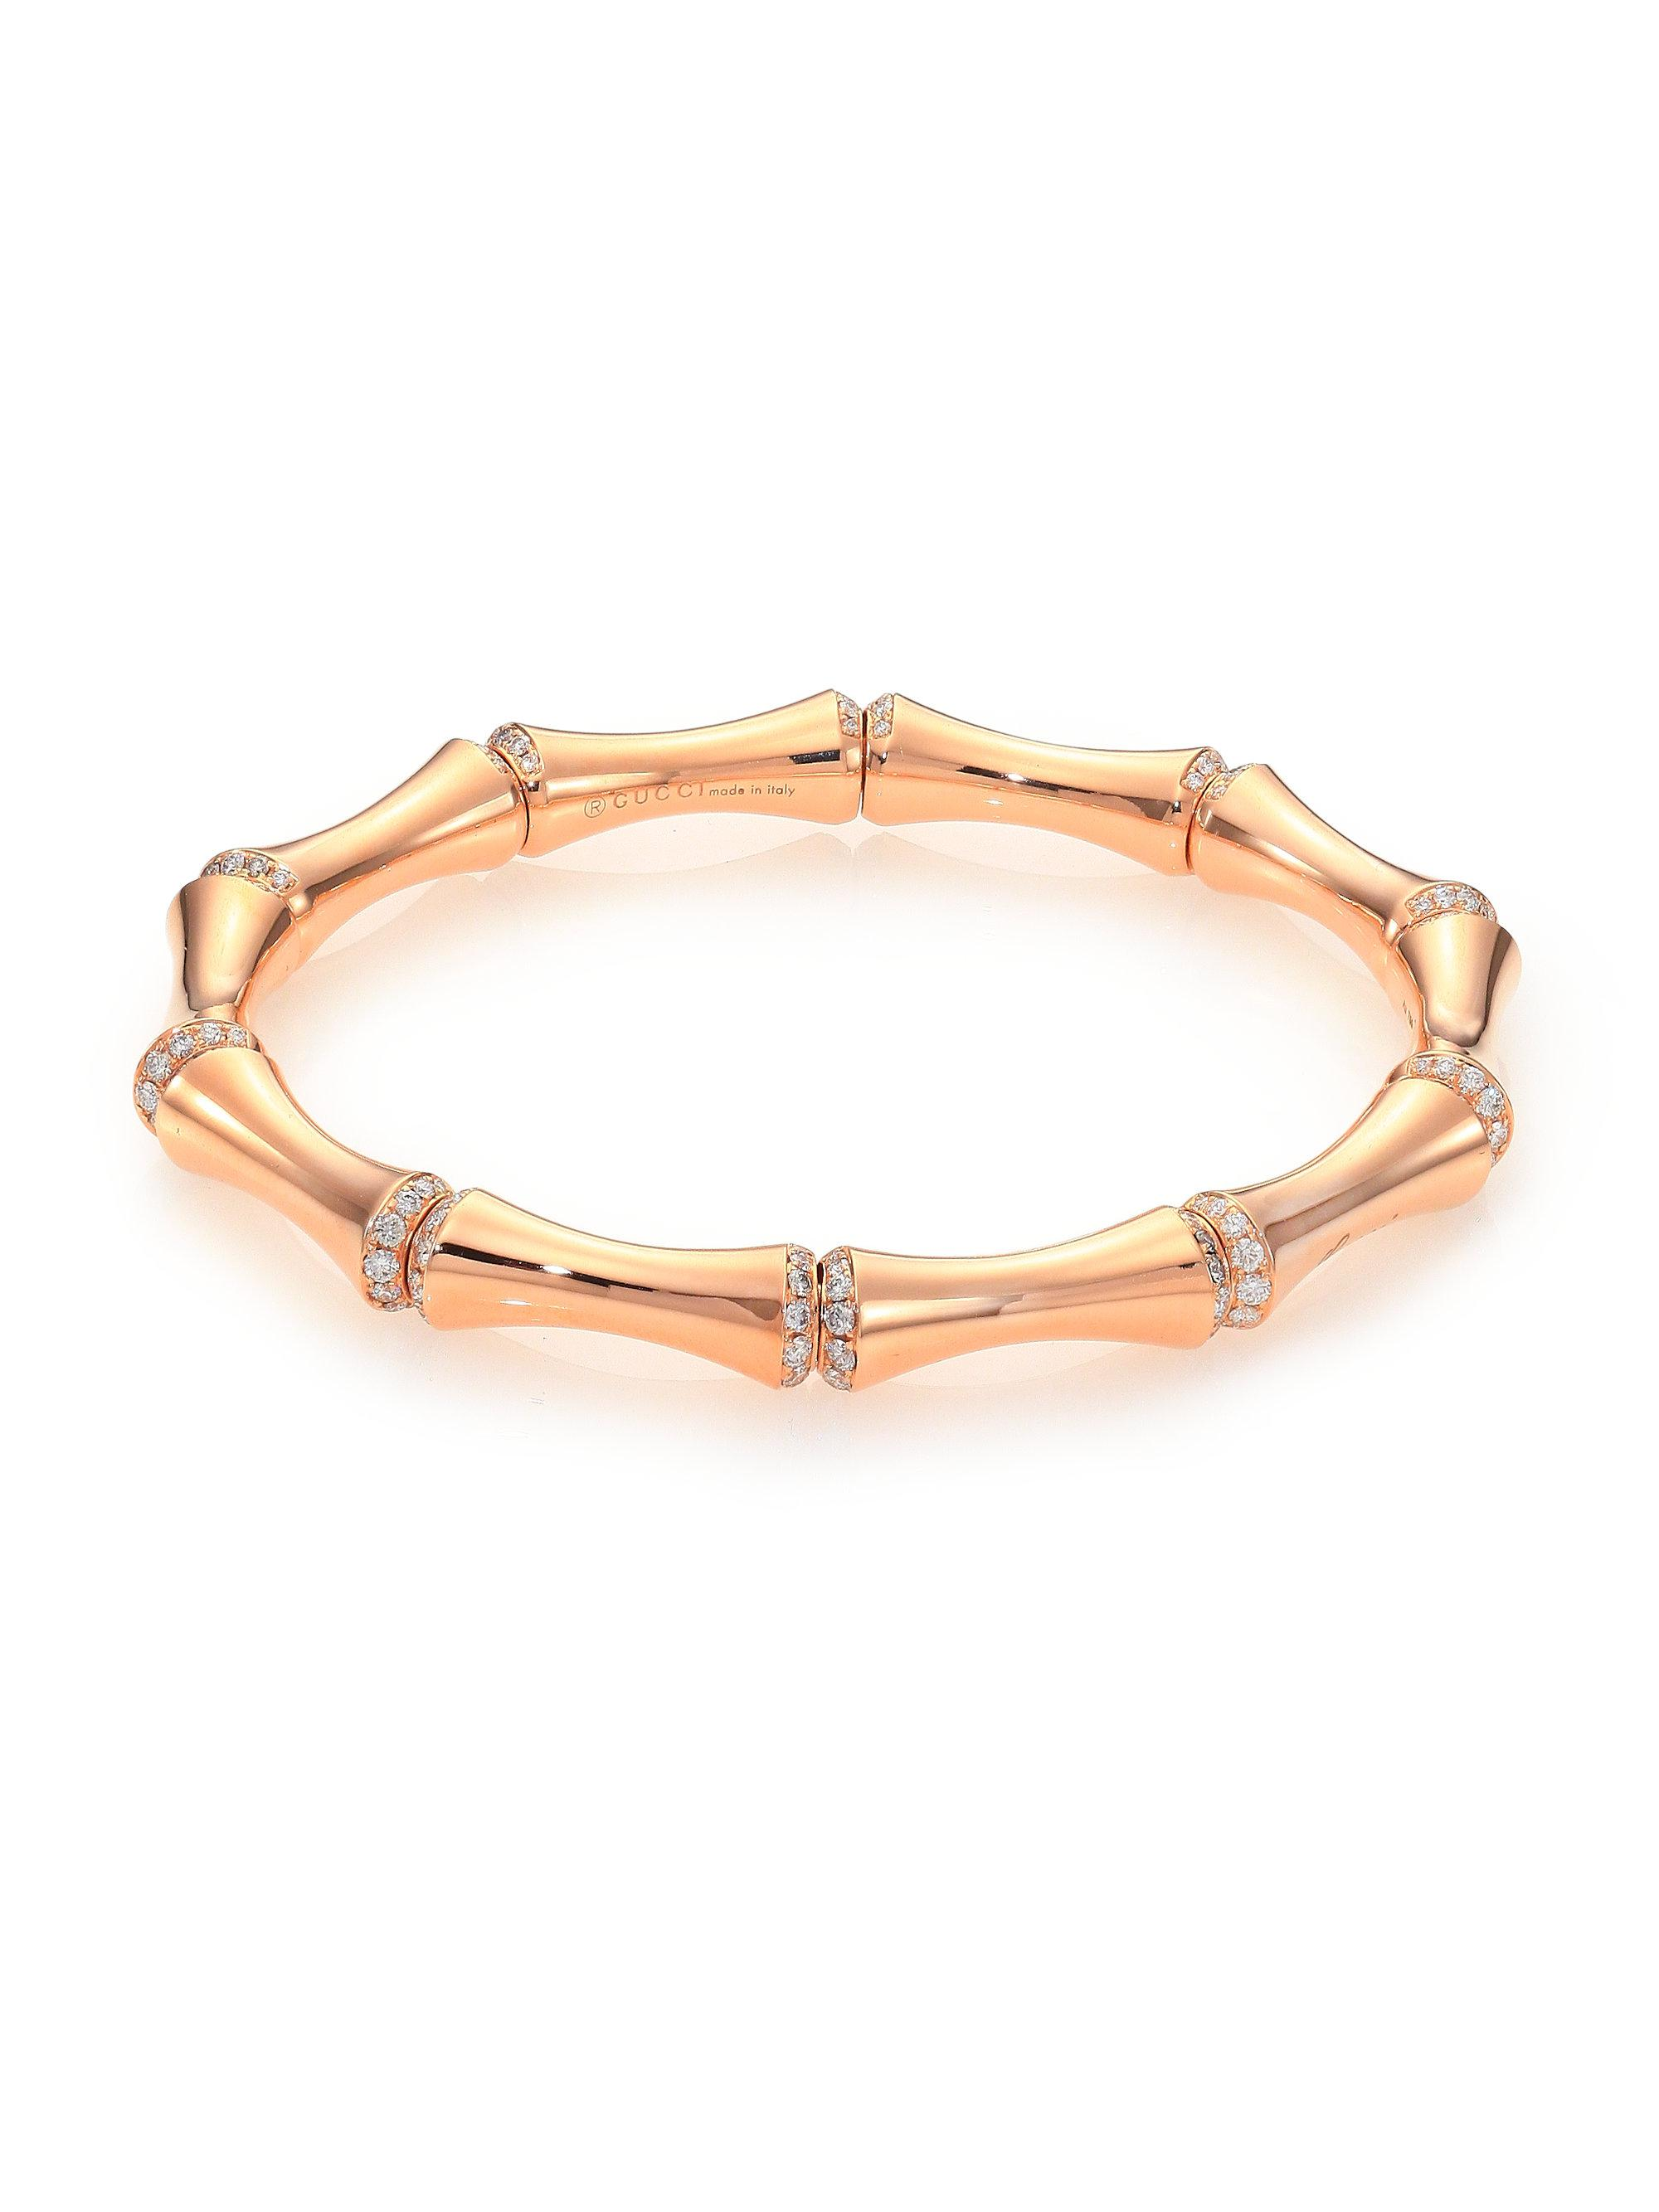 michael paveembellished in lyst tone diamond pav jewelry gold bracelet goldtone bangle kors padlock normal gallery bangles product pave pink rose